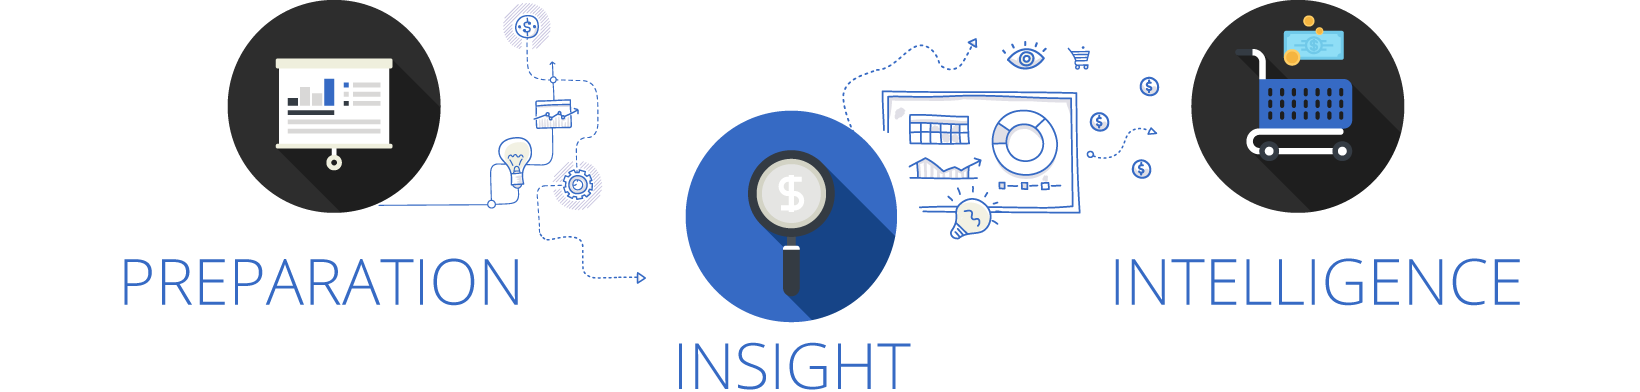 Preparation, Insight and intelligence graphic